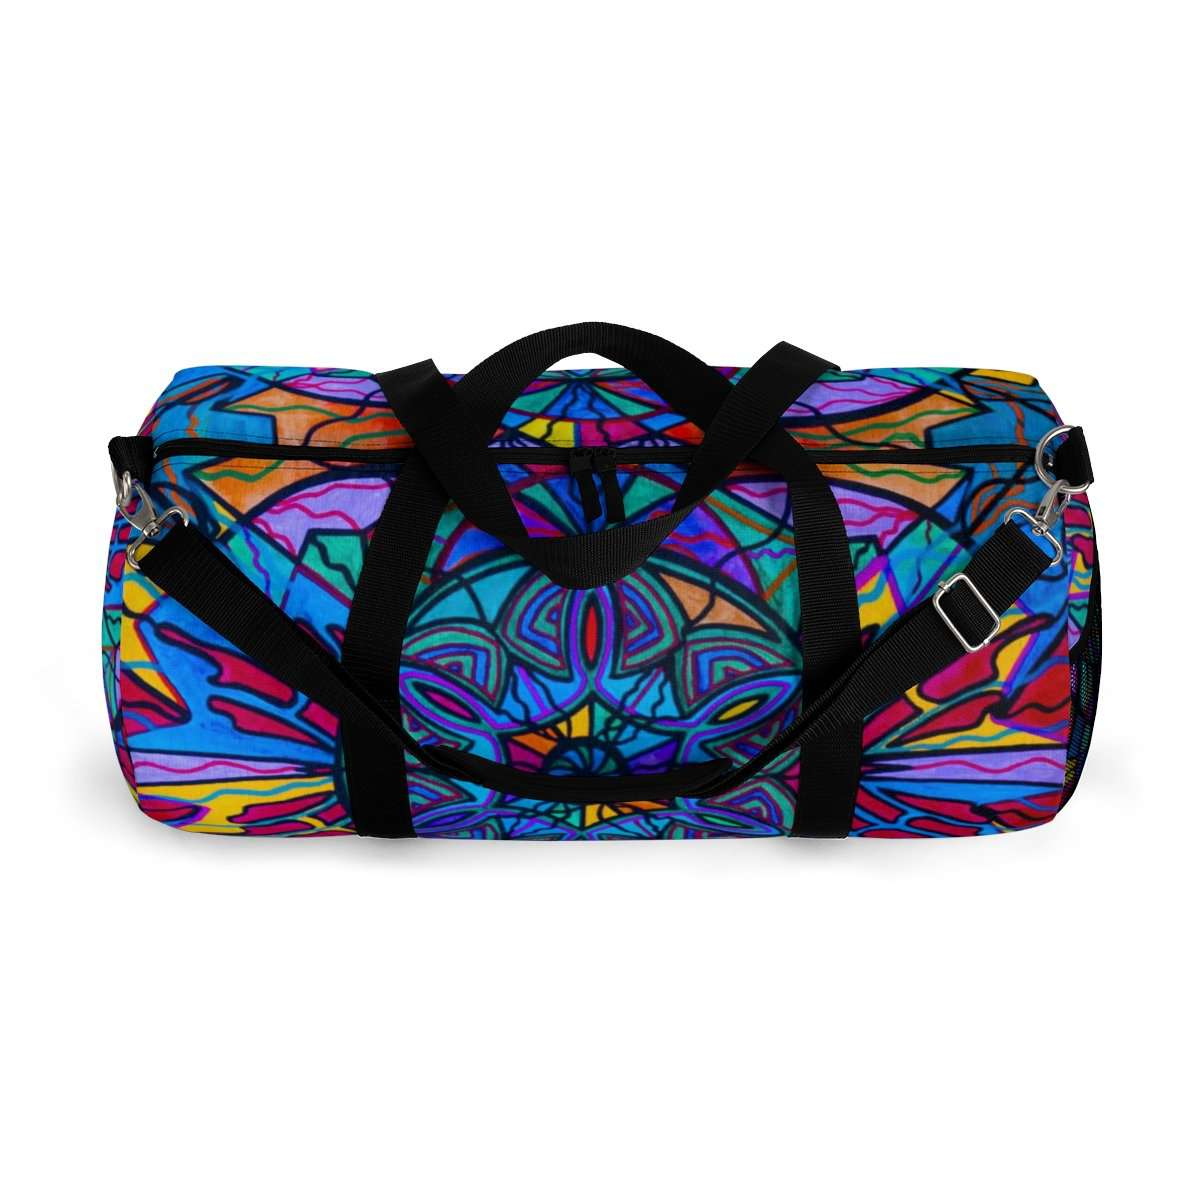 Poised Assurance - Duffle Bag